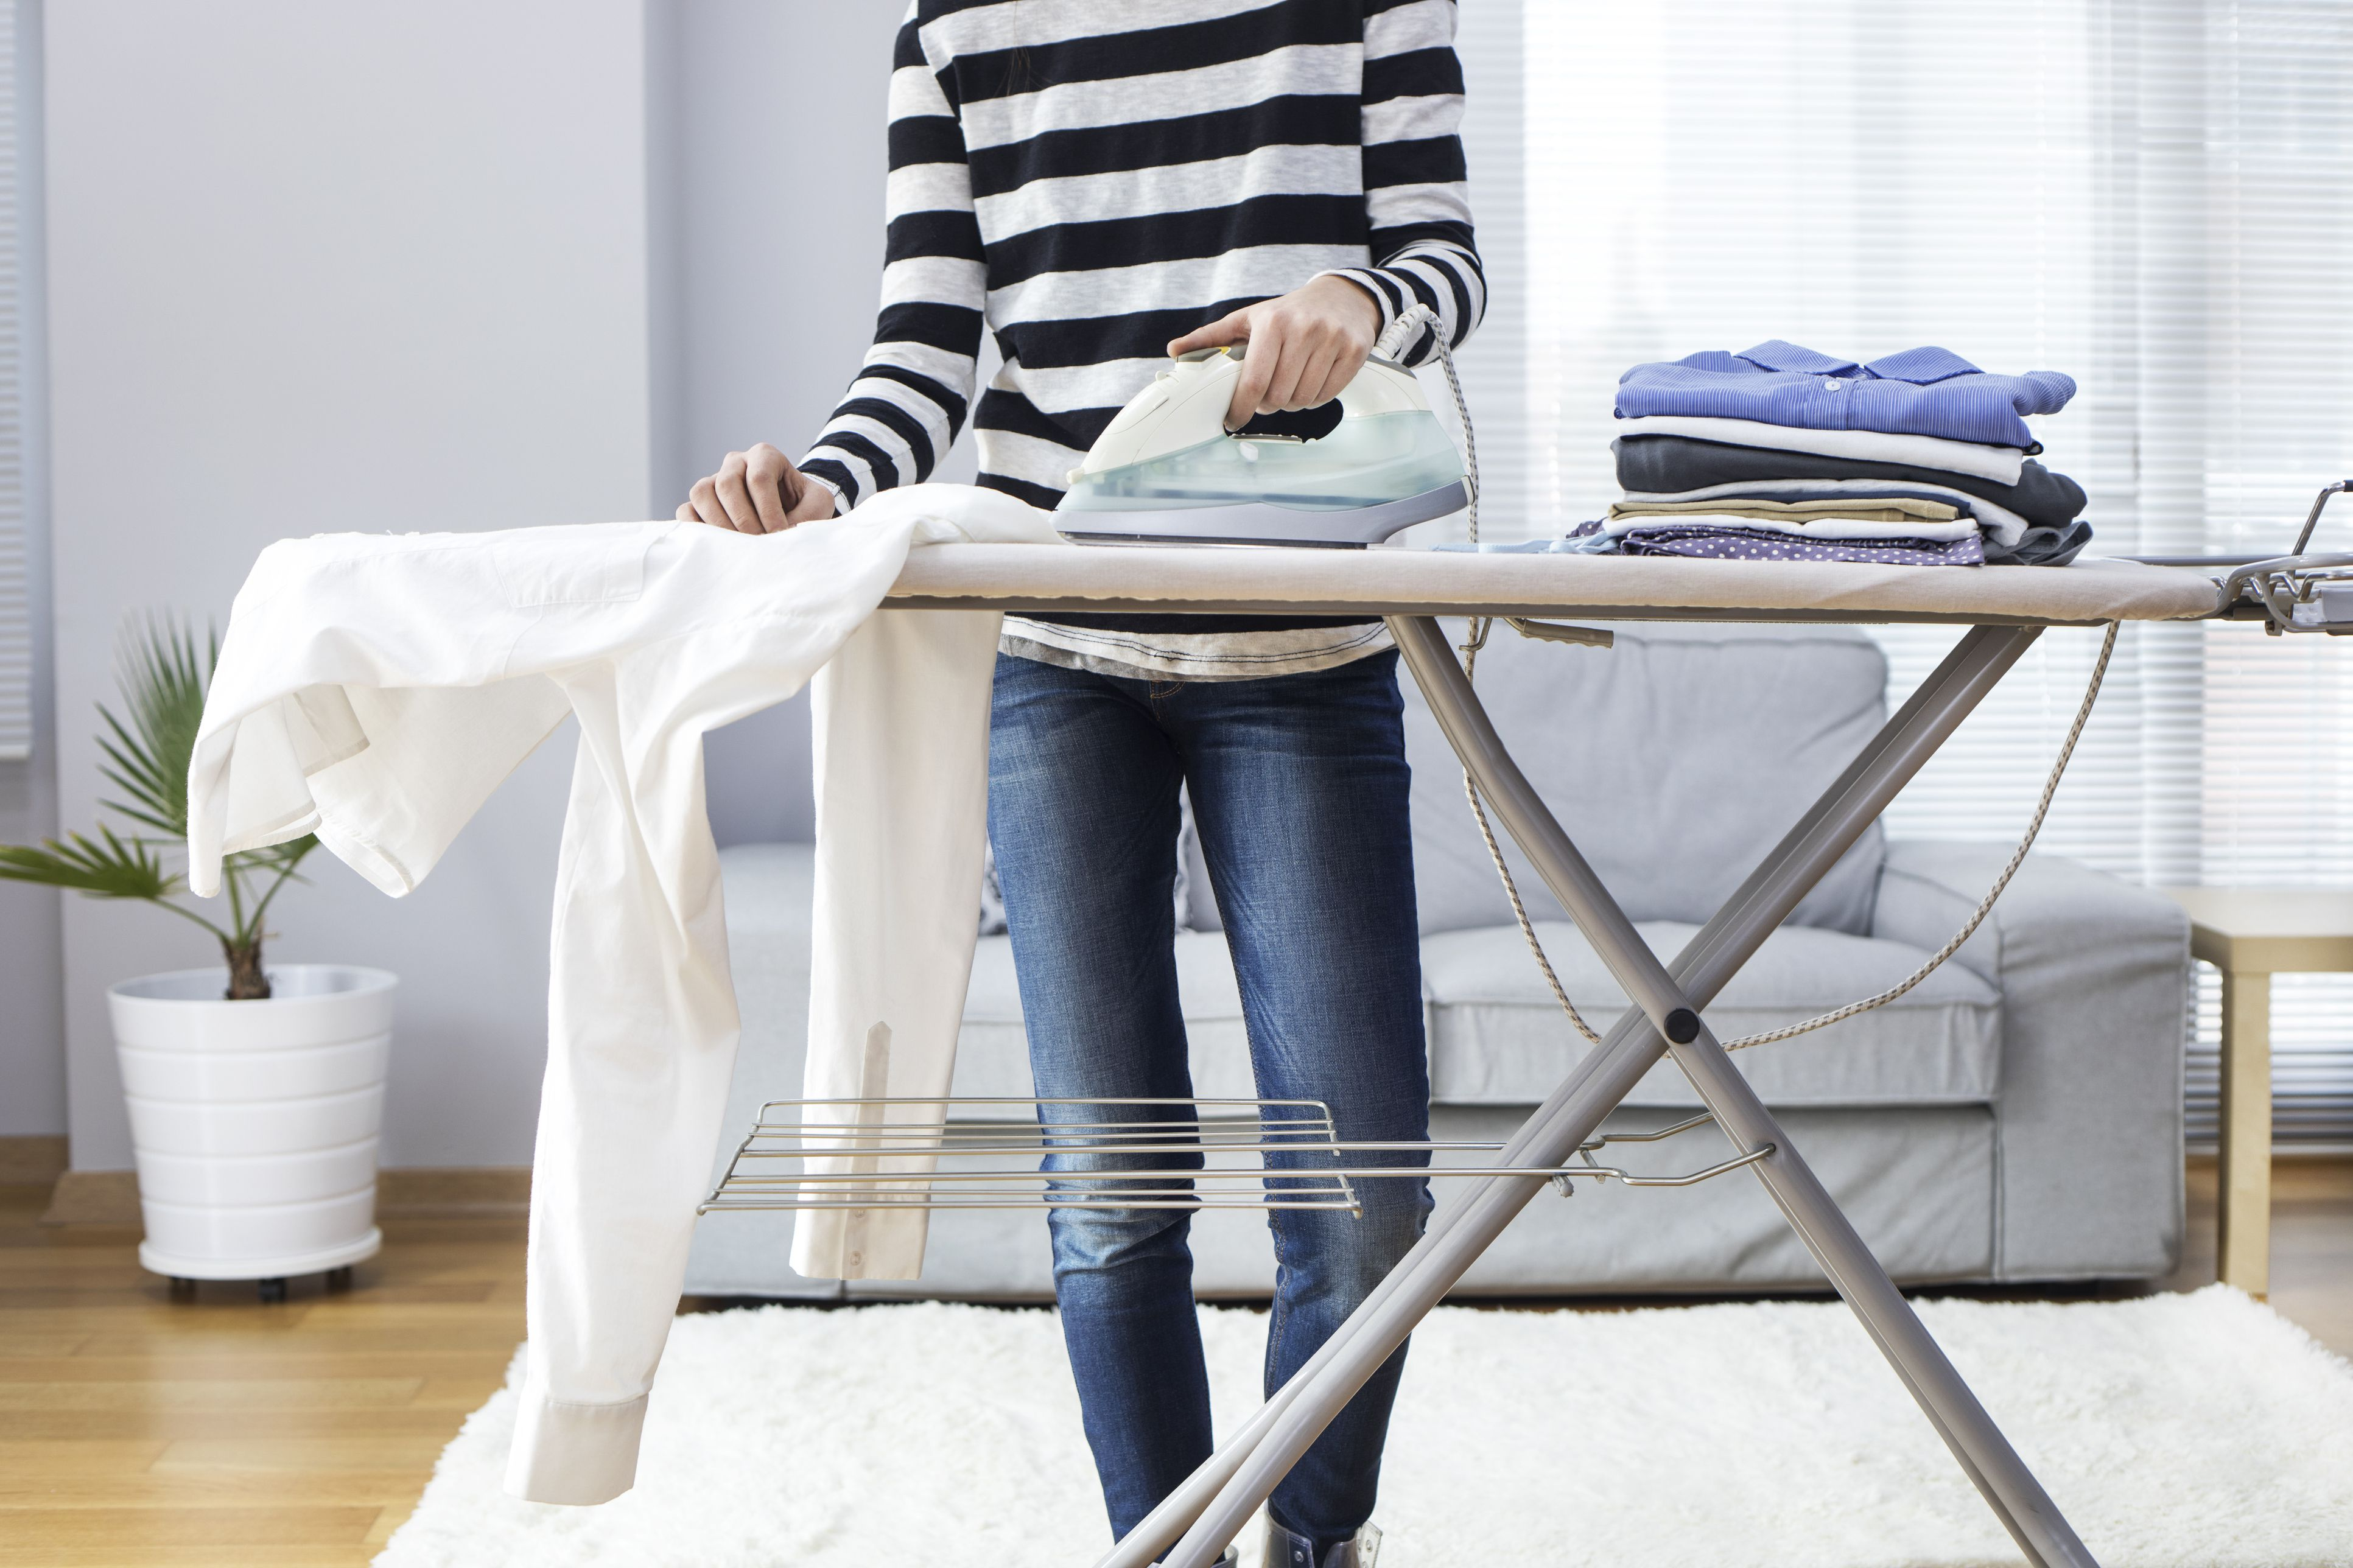 How to iron clothes correctly - How to get exterior paint out of clothes ...